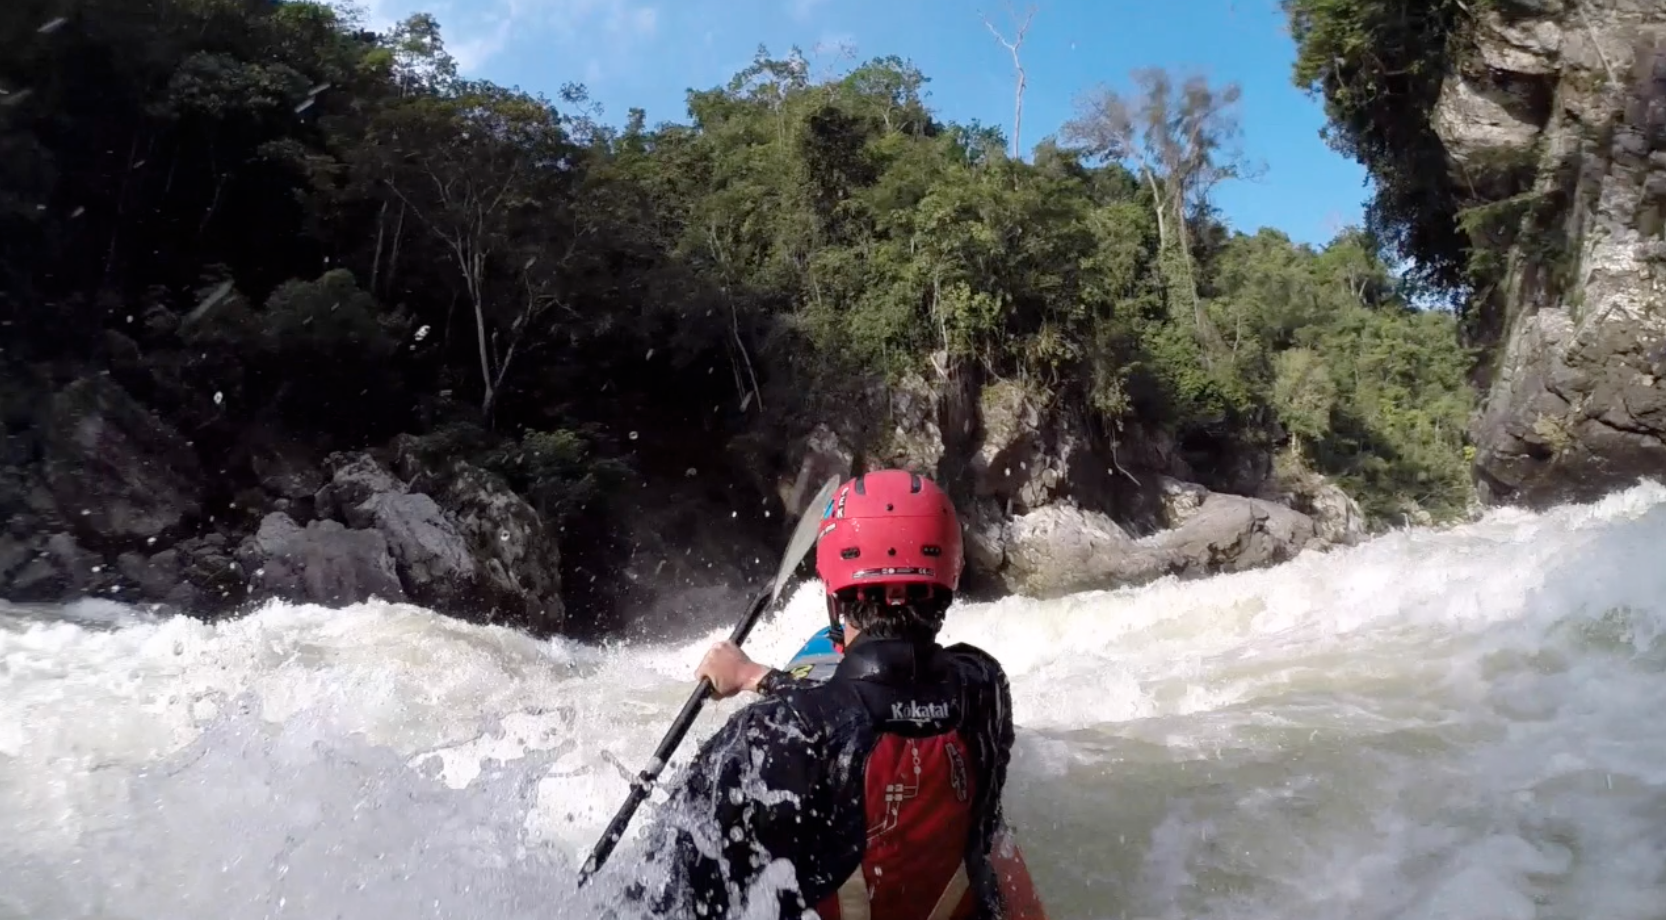 Colombia | Kayak Session Short Film of the Year Awards 2015, Entry #19